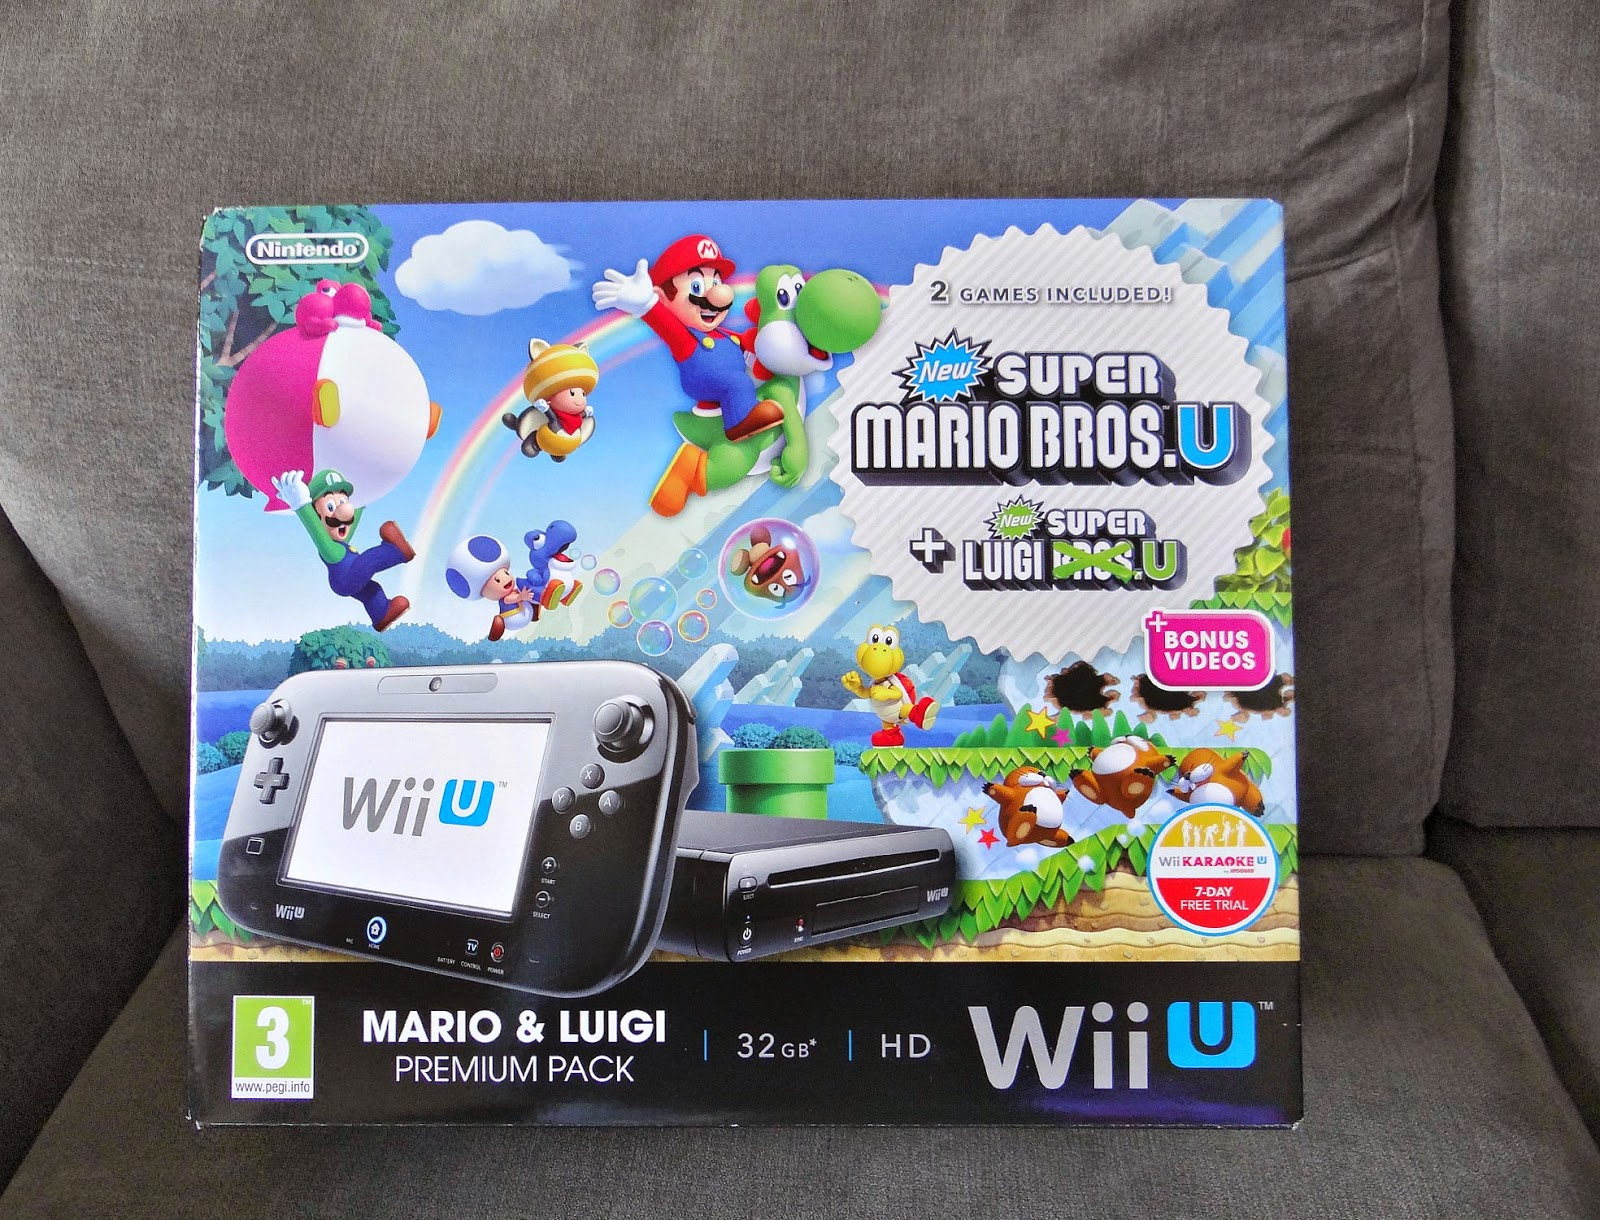 Nintendo Wii U, Mario Brothers, perfect console for parties